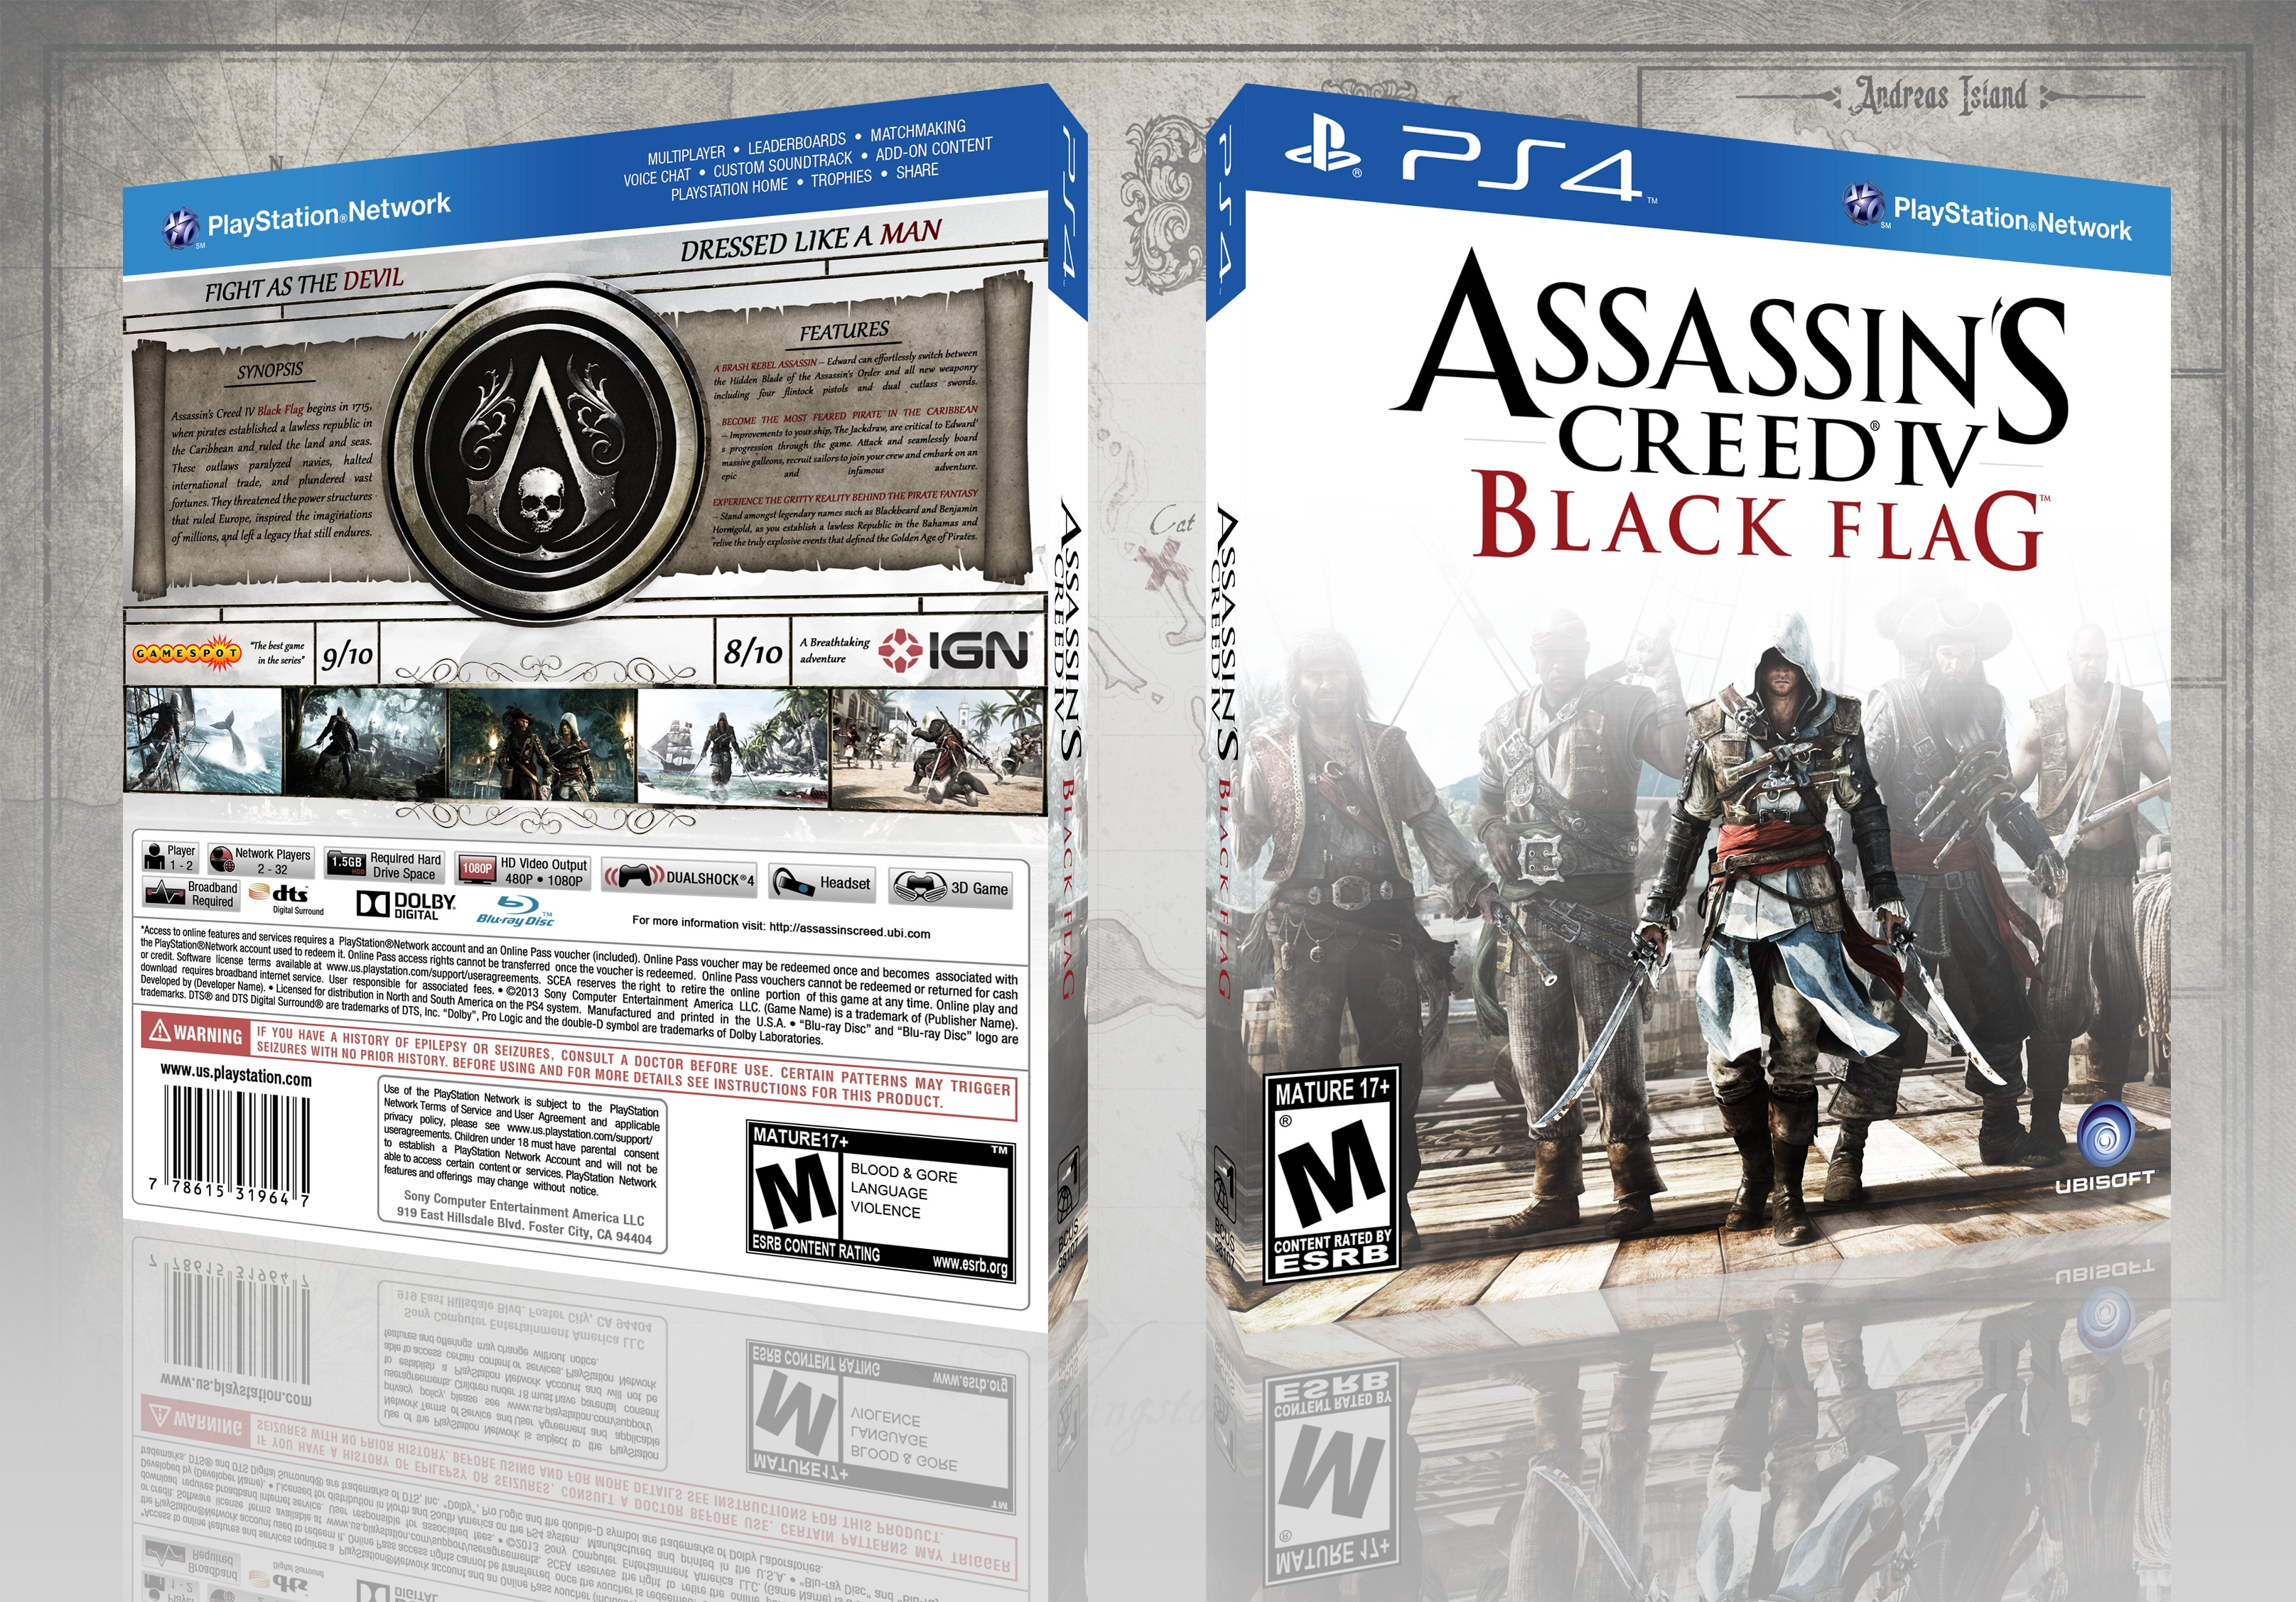 Assassin S Creed Iv Black Flag Playstation 4 Box Art Cover By